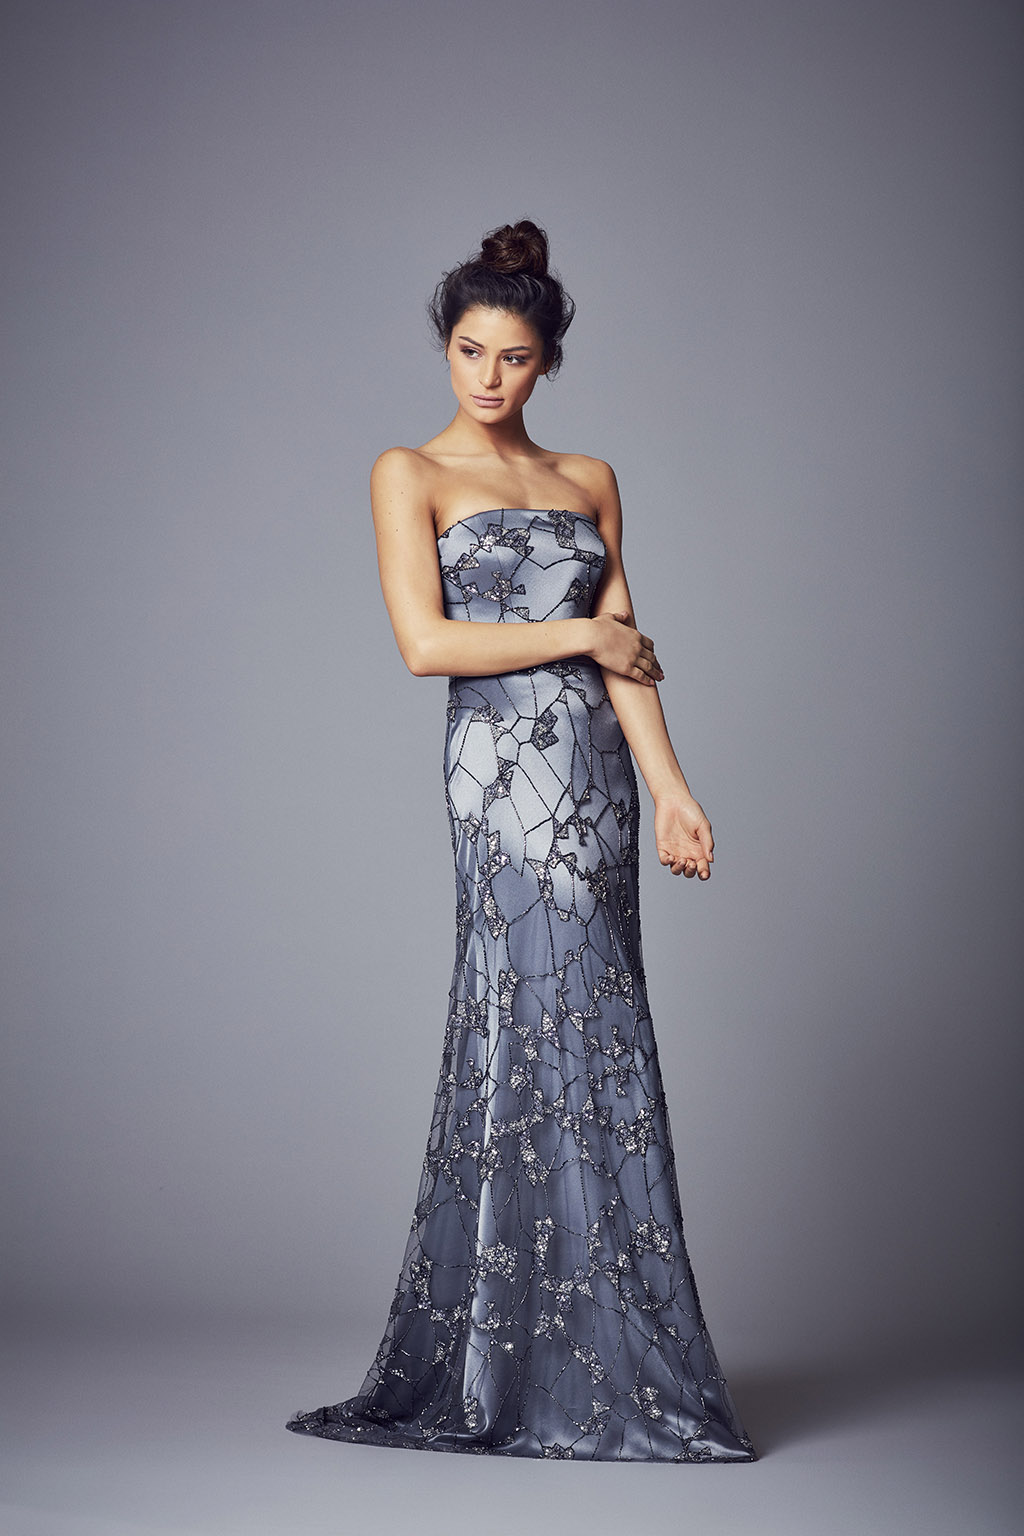 Leonor | Evening Wear Collection 2017 by Suzanne Neville